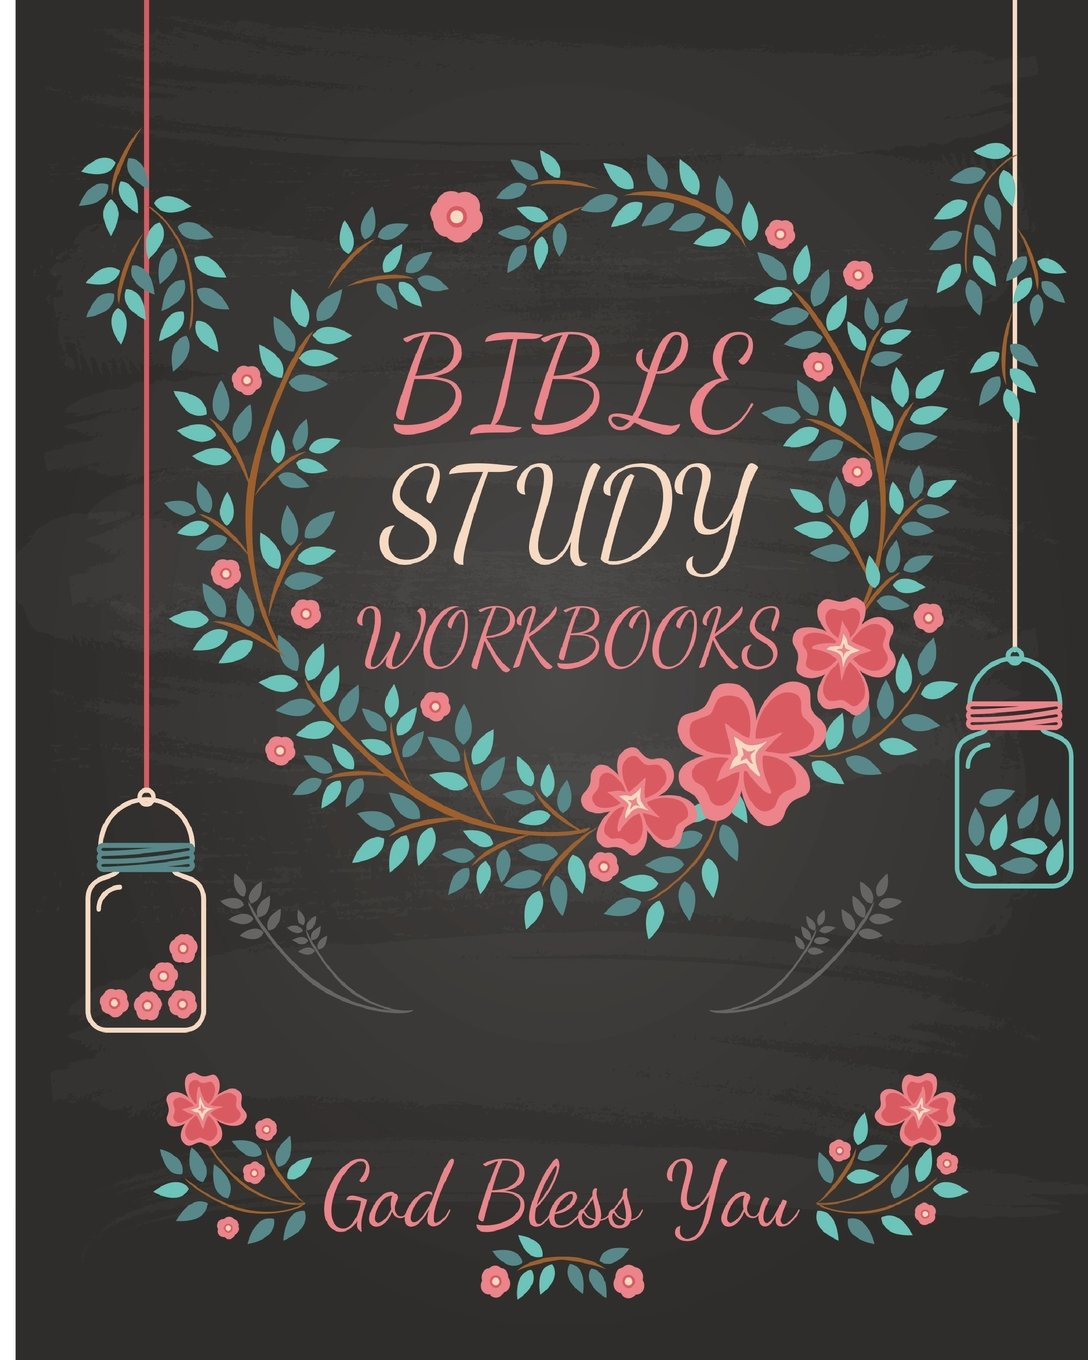 Bible Study Workbooks: Be Still 3 Months of Daily Journaling pages to Write Scripture, Reflection, Prayer & Praise 8x10Inches ebook